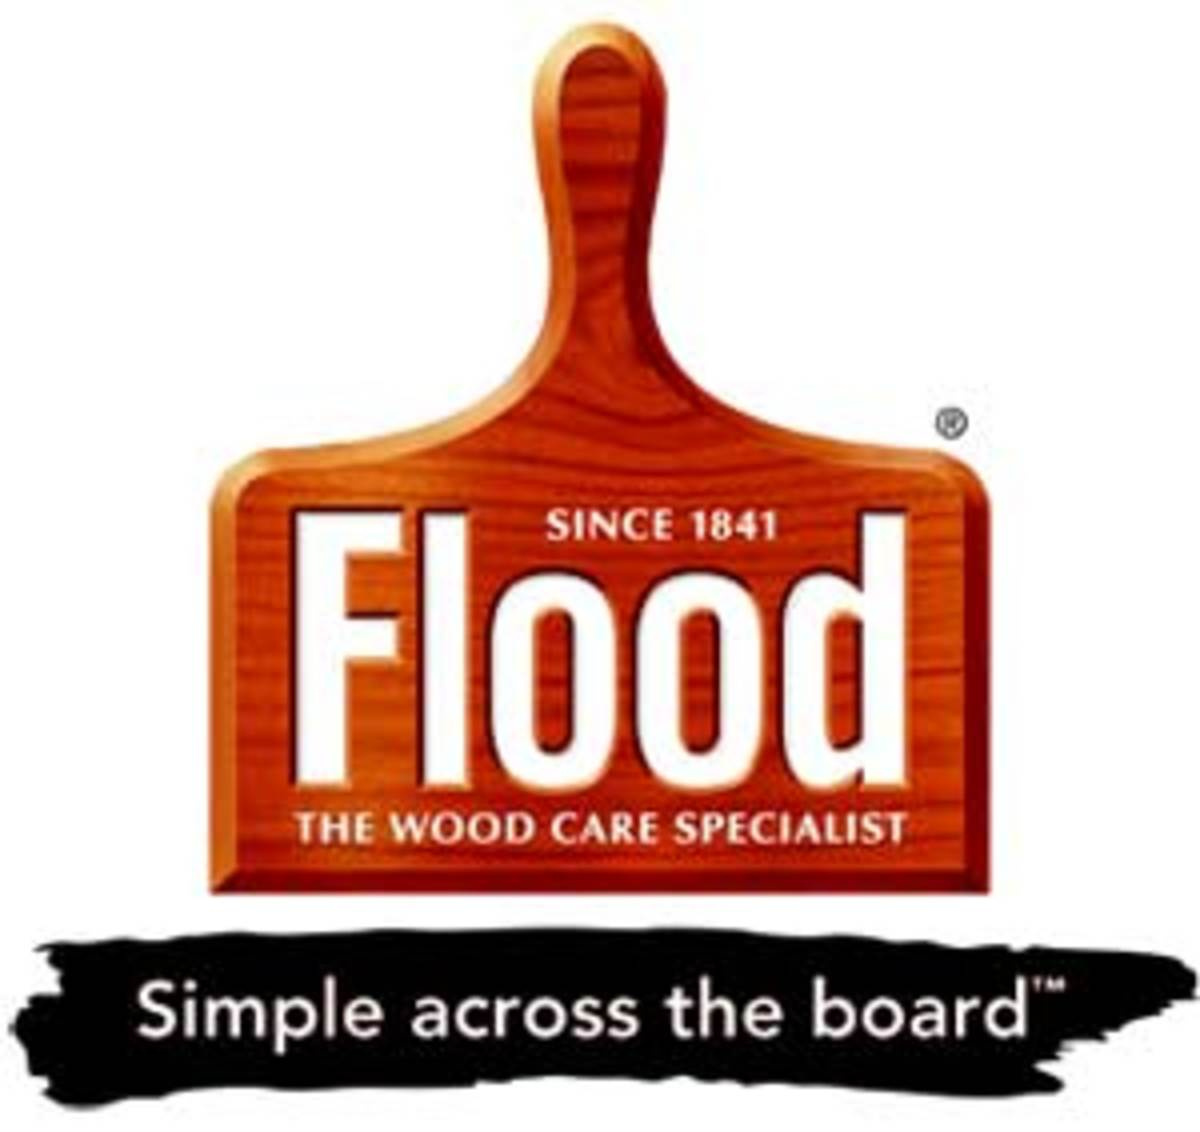 flood_logo